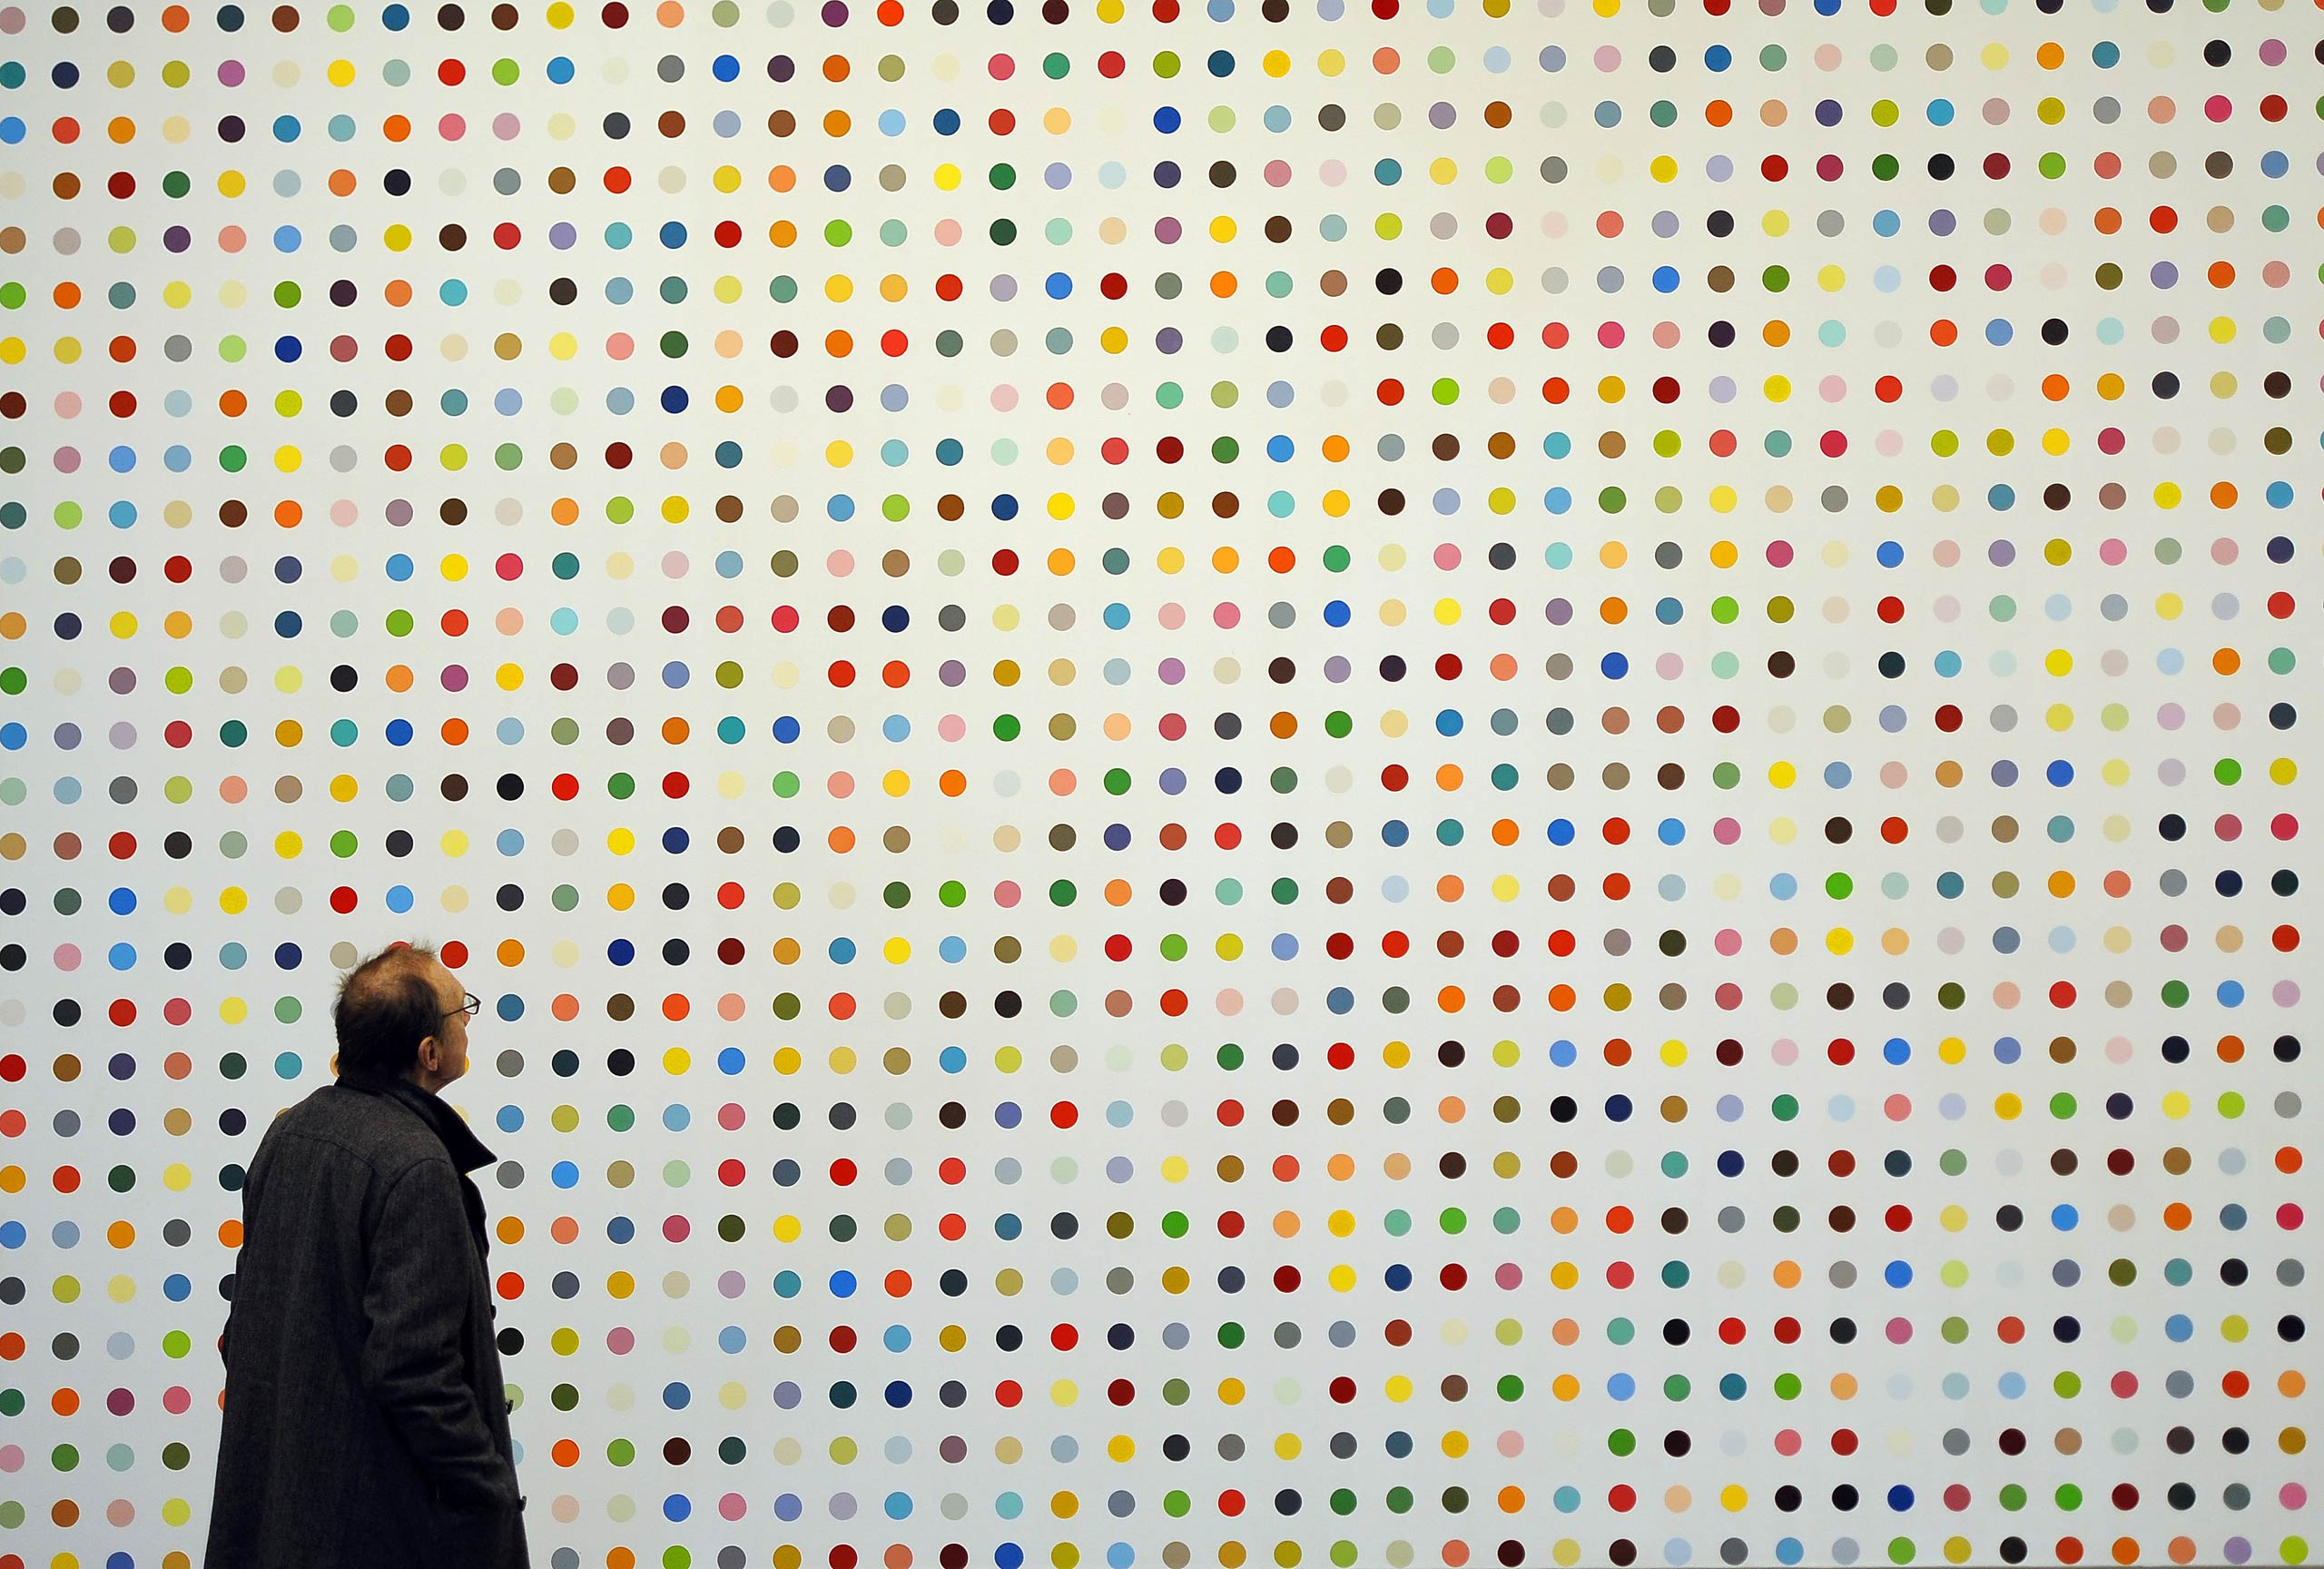 Hirst's iconic  Spot Paintings  are mostly executed by his assistants. This one,  Urea-13C  (2001-2006), shares a name with a breath test for H. pylori.